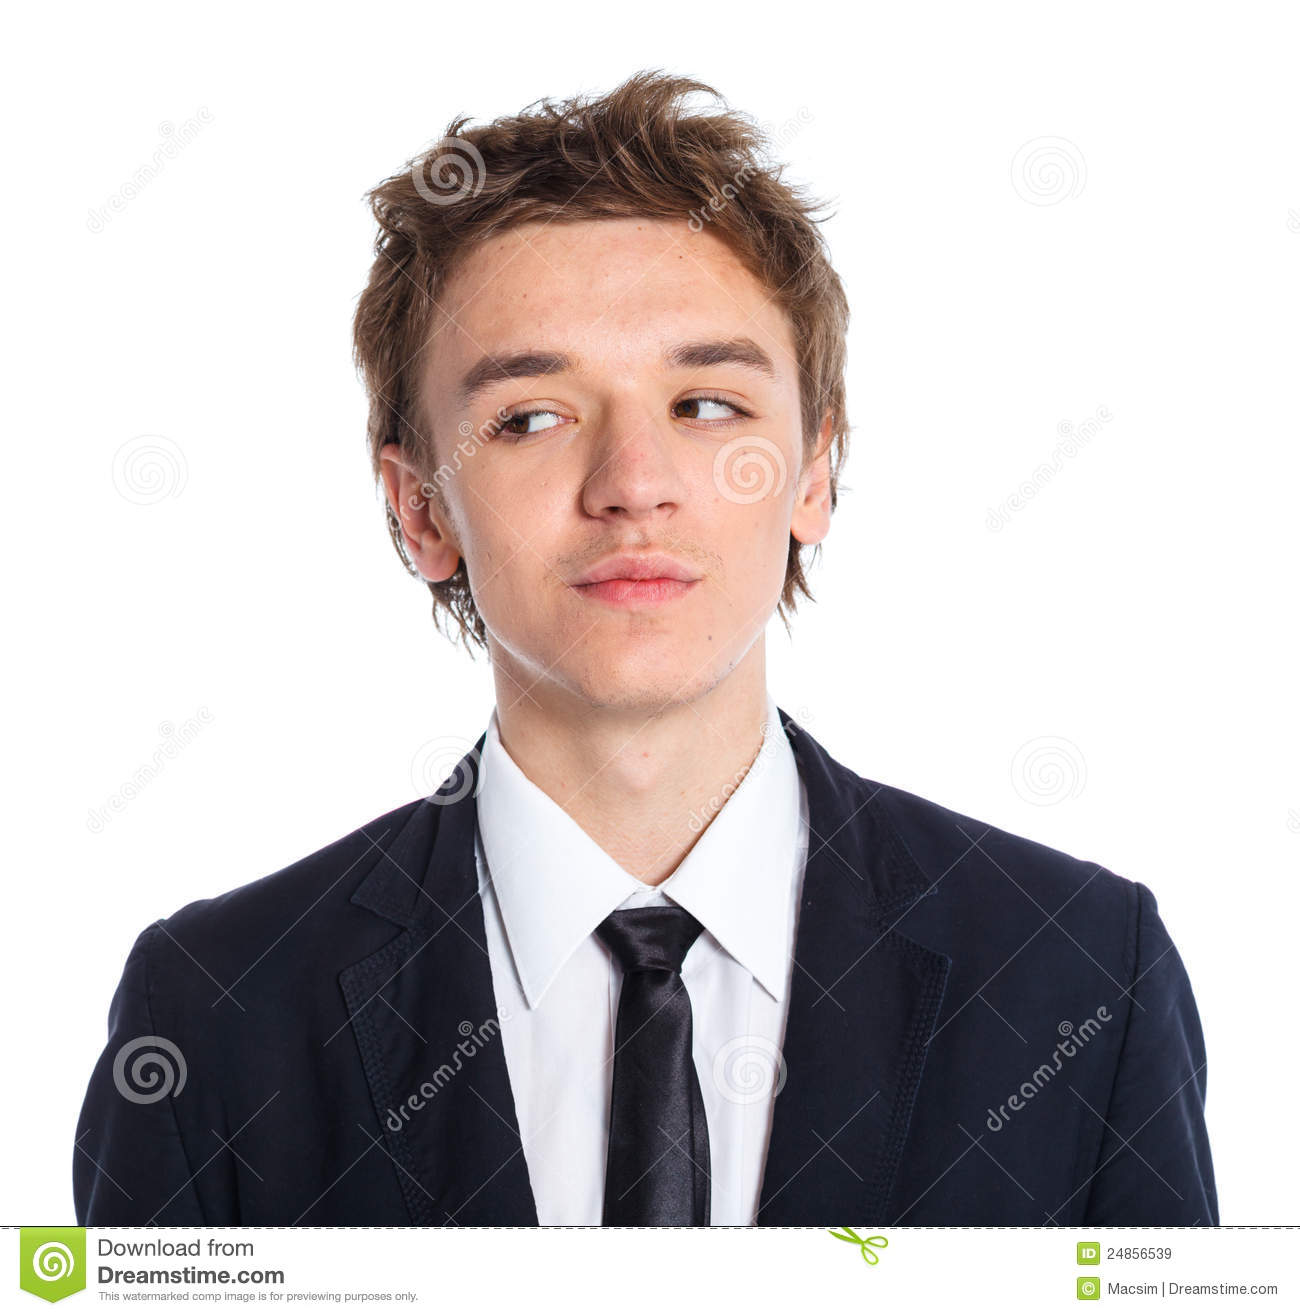 Teenage Boy In Business Suit Stock Images - Image: 12316224